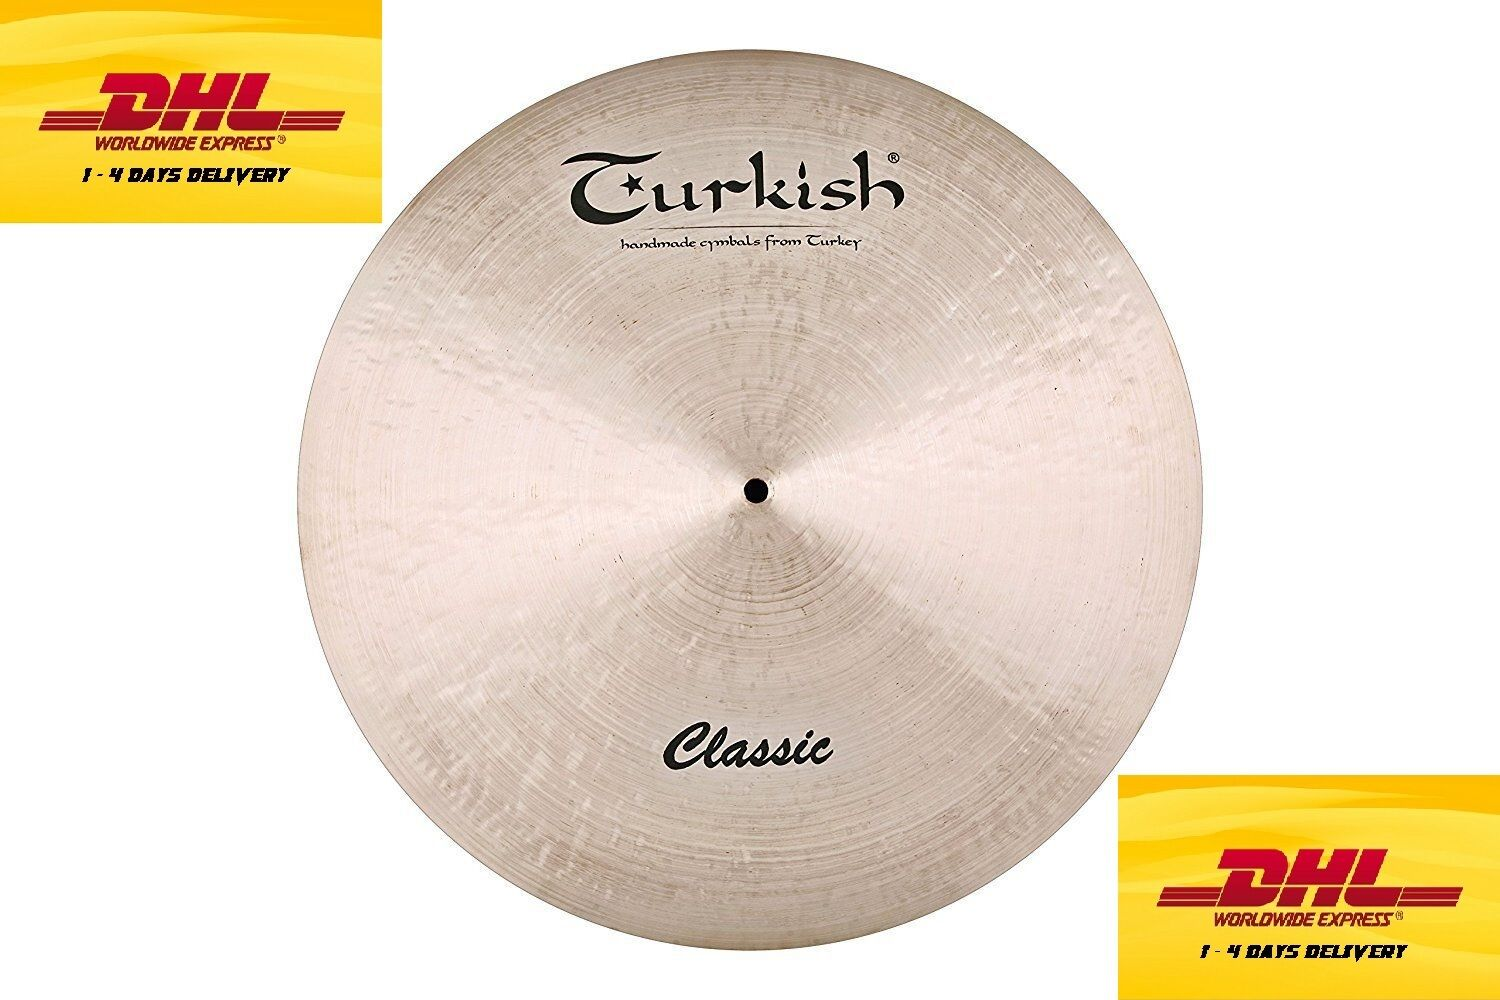 Turkish Cymbals Traditional Series 20-inch Classic Ride C-R20 Cymbals